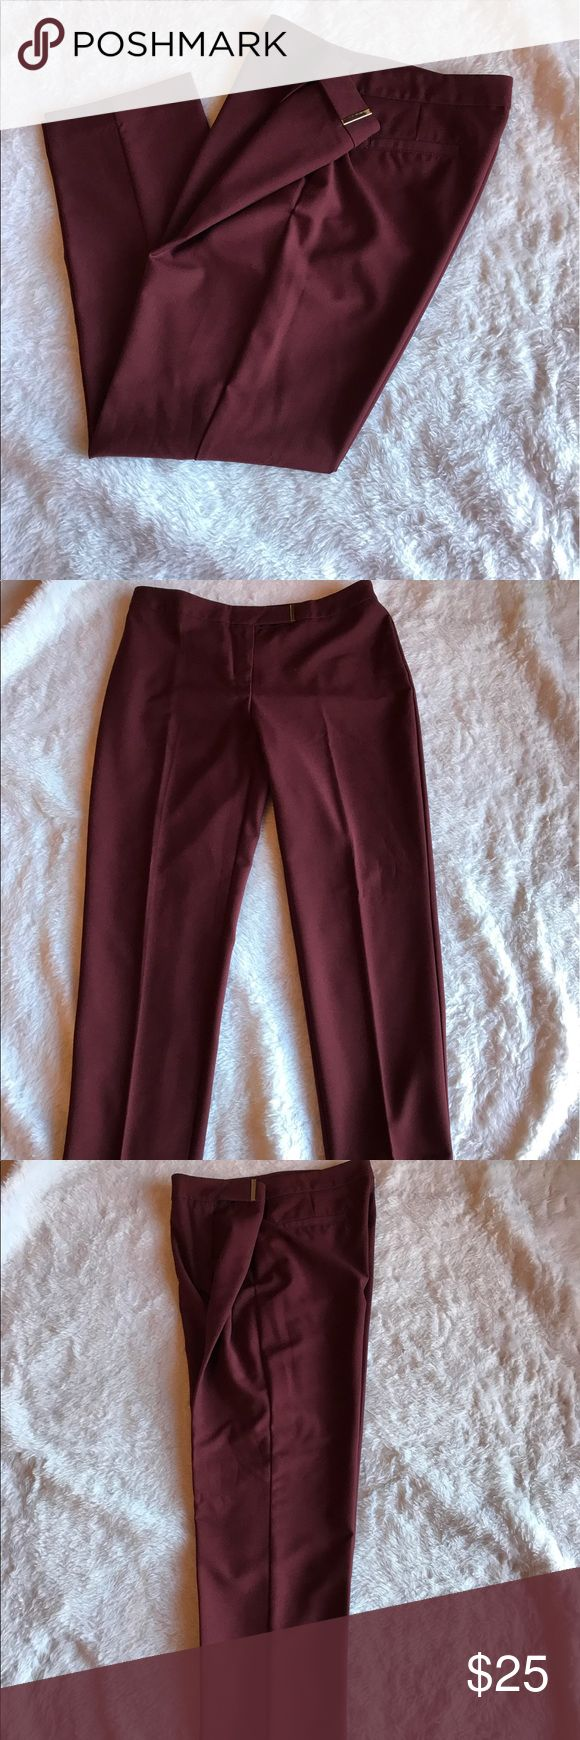 "Ellen Tracy maroon dress ankle pant w/28"" inseam Worn once🎉 Please ask for additional pictures, measurements, or ask questions before purchase. 🎉 No trades or other apps 🎉 Ships next business day, unless noted in my closet  🎉 Bundle for discount Ellen Tracy Pants Ankle & Cropped"